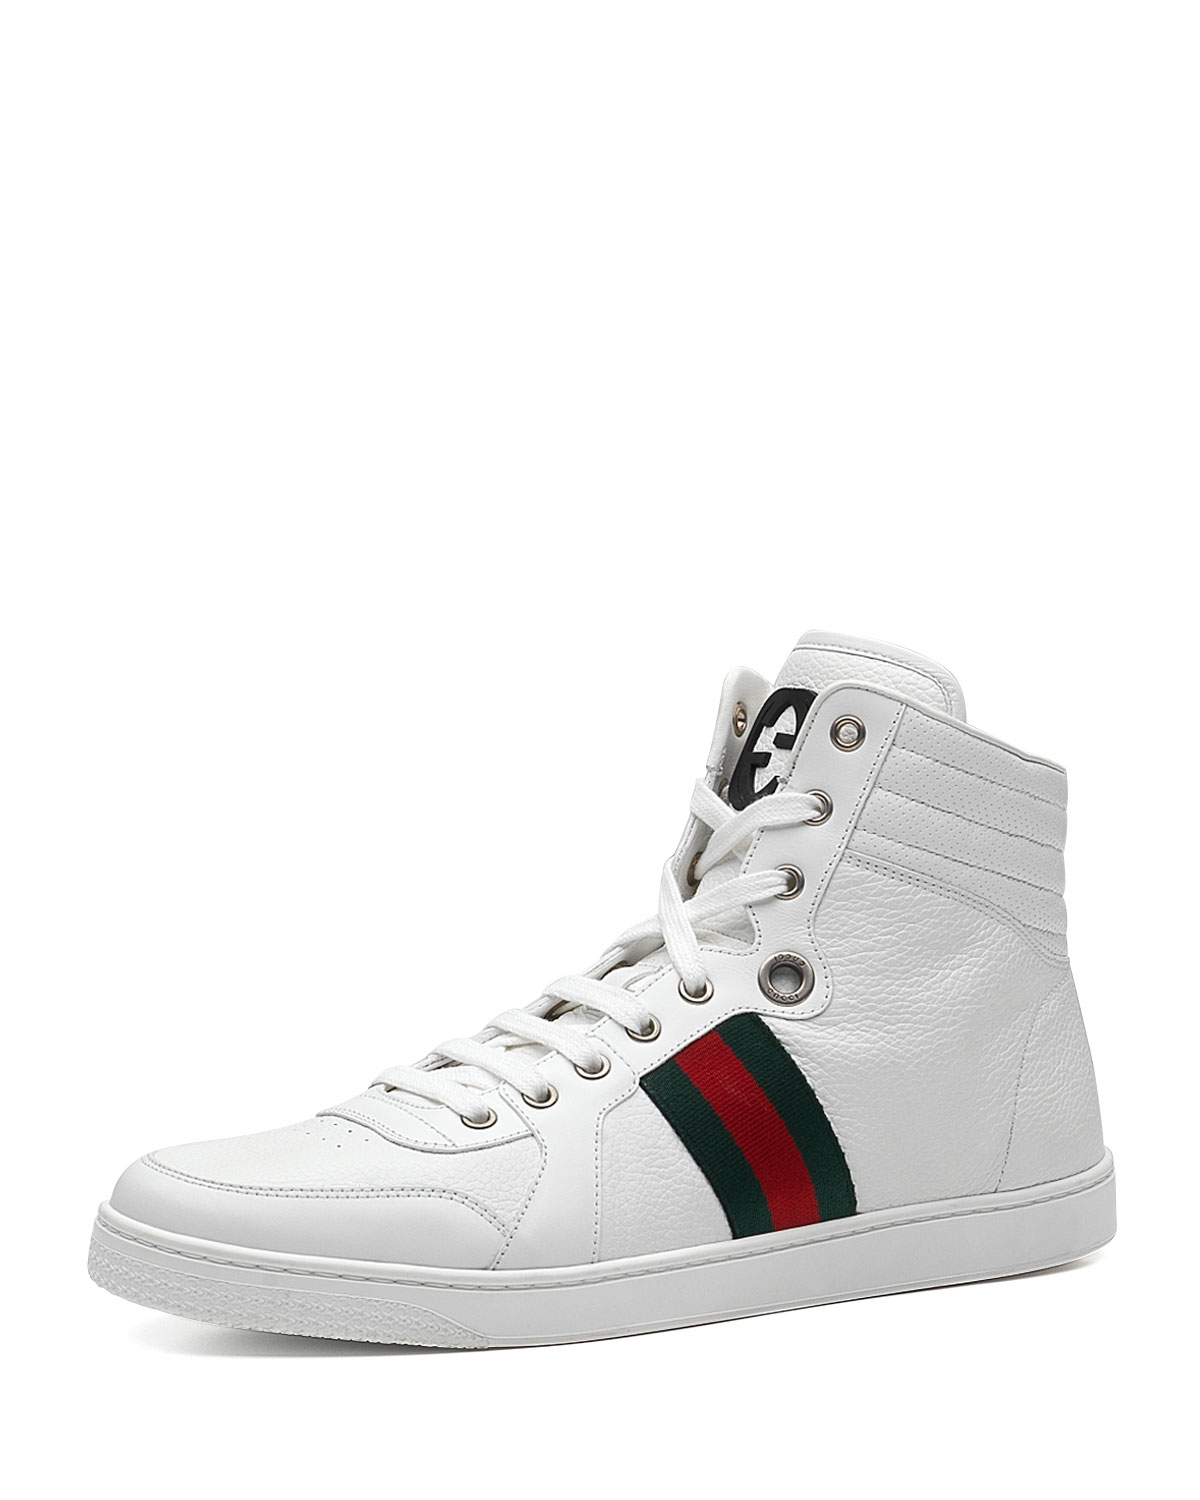 cb99e2a60ab Gucci Leather High-Top Sneaker, White | Neiman Marcus